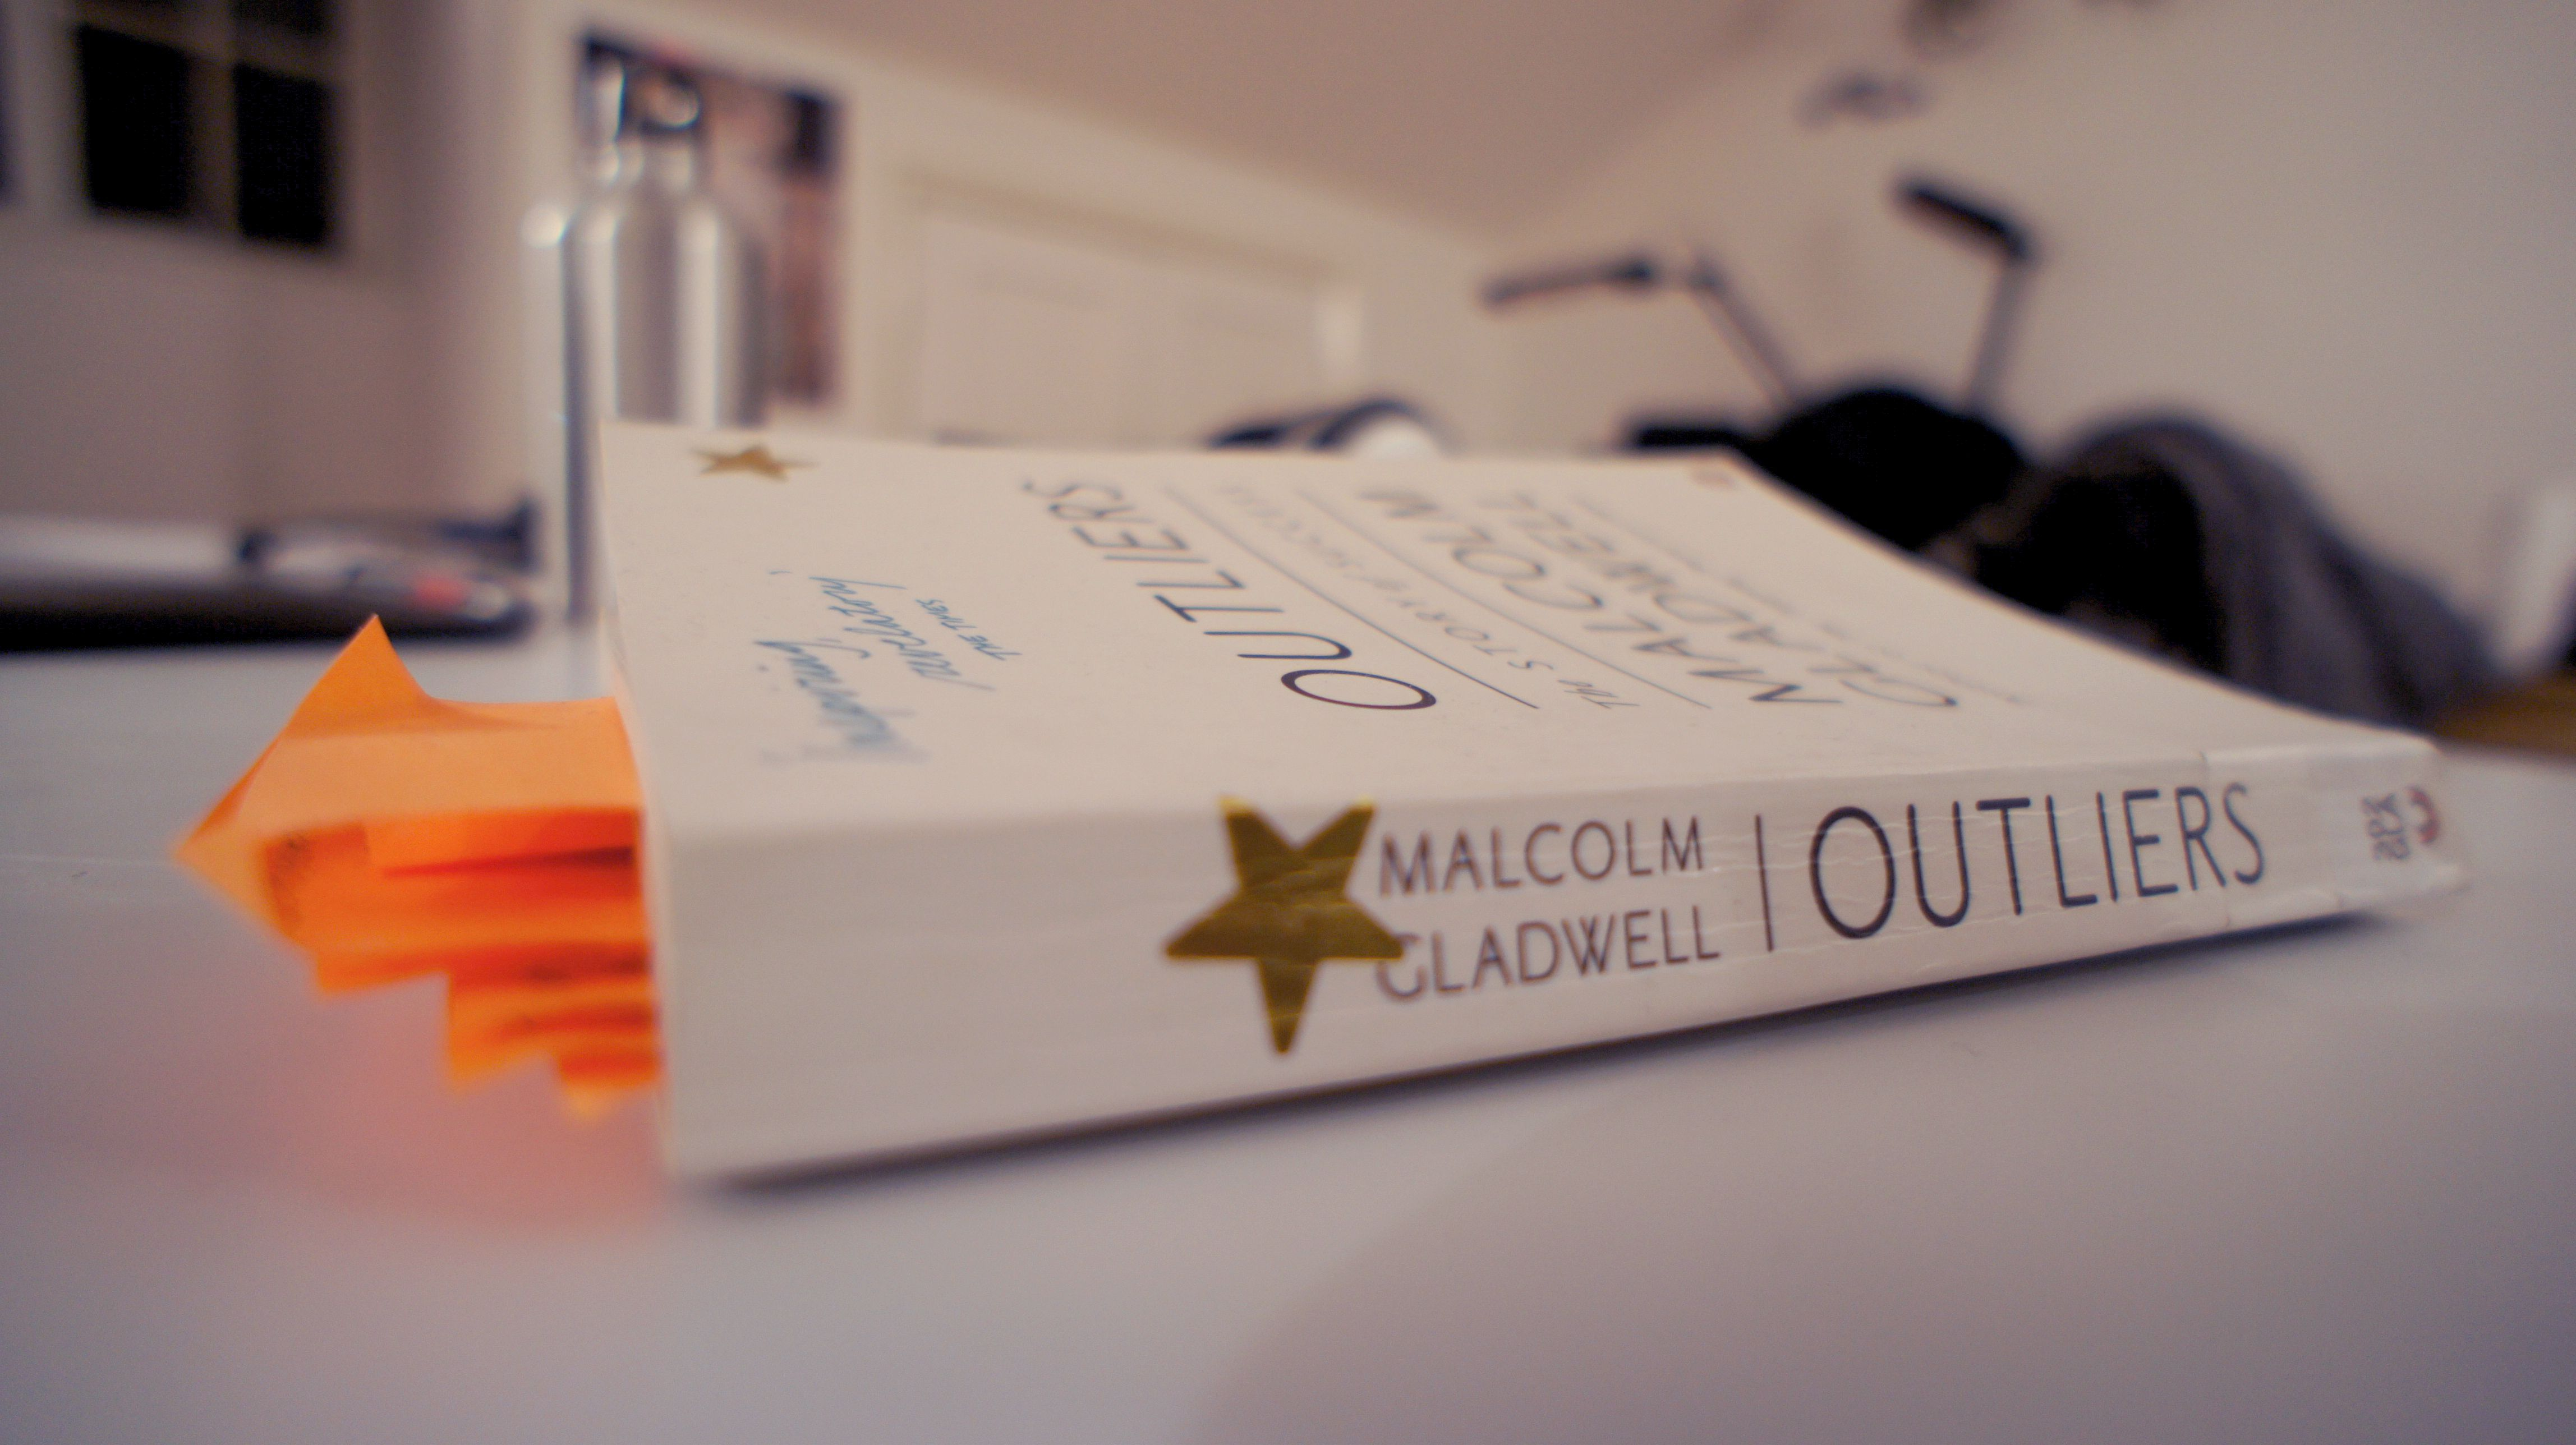 Outliers By Malcom Gladwell The 10 000 Hours Rule To